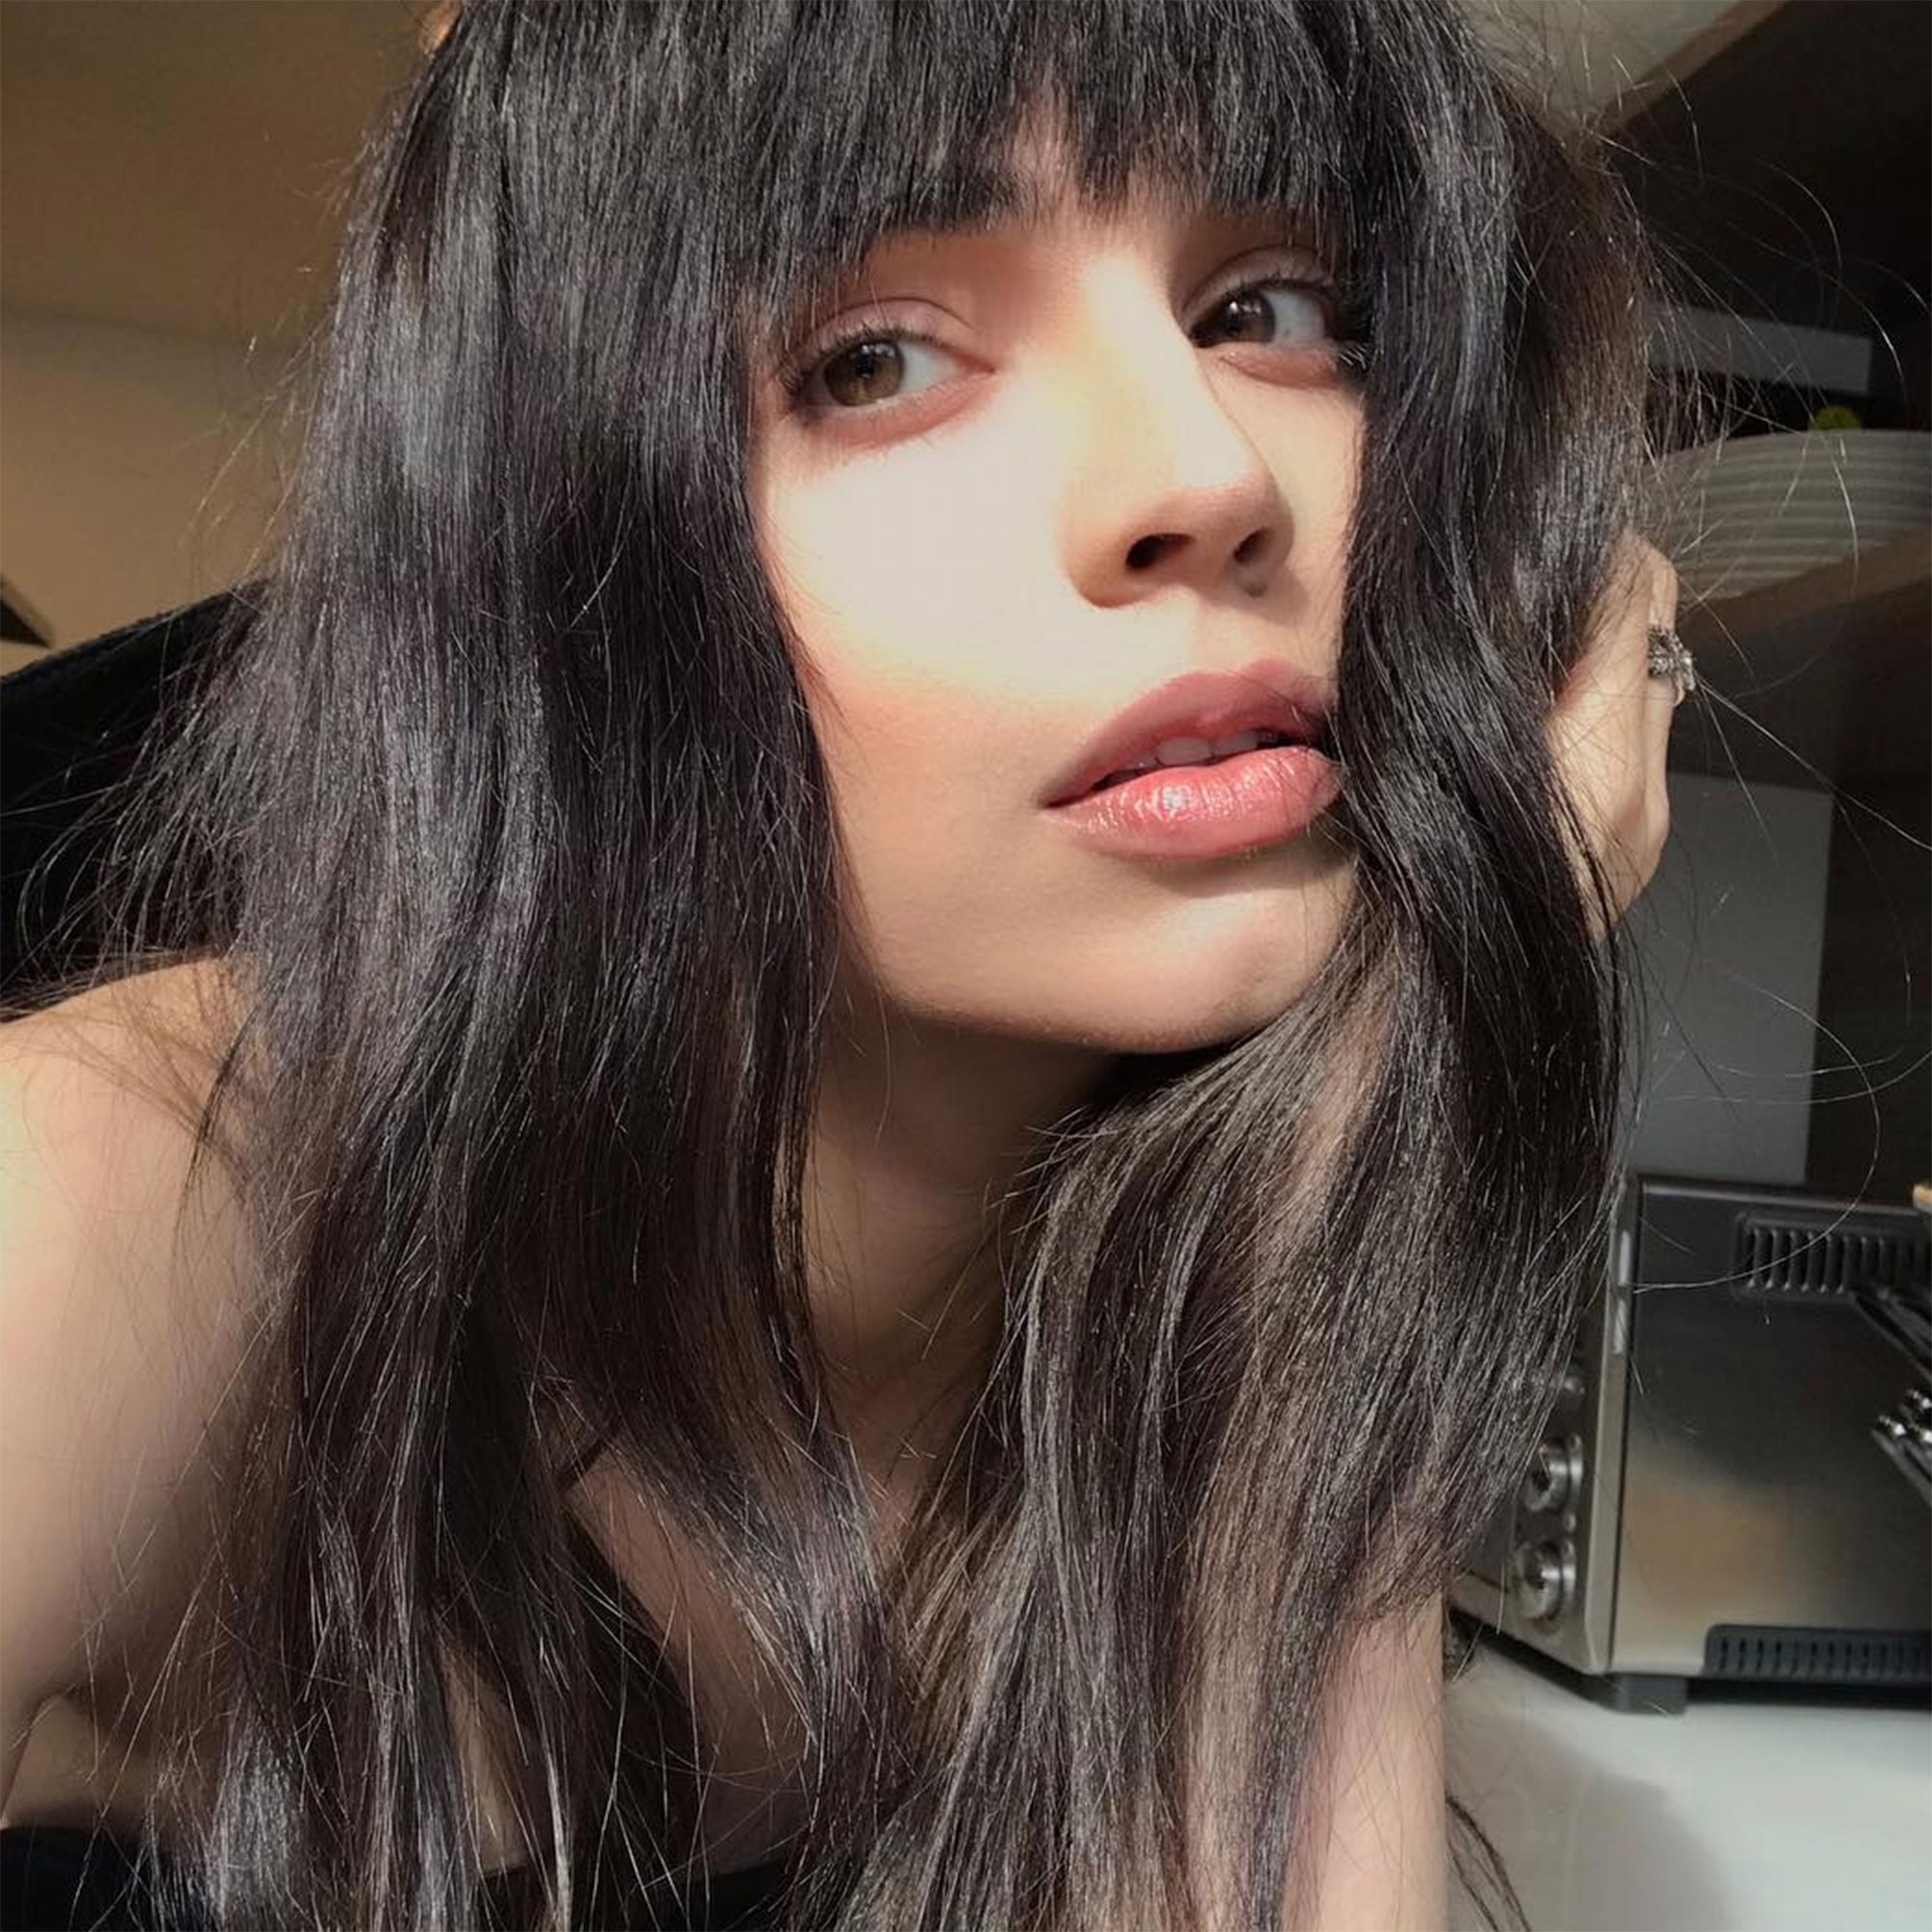 Sofia Carson Celebrity Bangs: Fierce Fringe Inspo For Your Next Haircut - The Pretty Little Liars: The Perfectionists star debuted a choppy, rock 'n' roll curtain bang by mane man Calie Noble in February 2019.